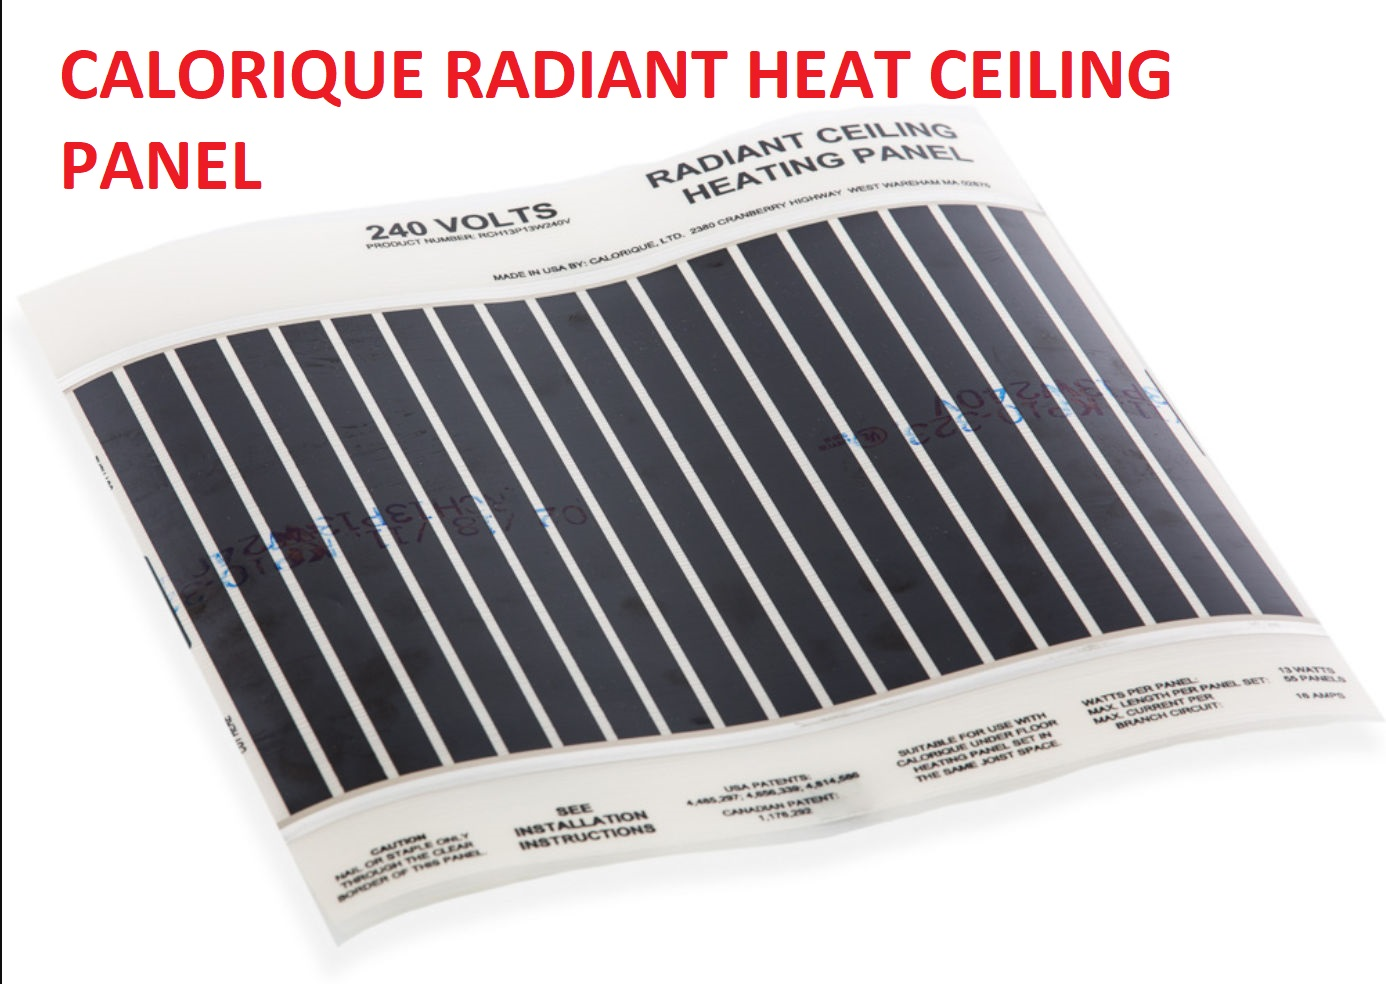 Radiant Heat Temperatures What Temperature Settings Are Used For Heating